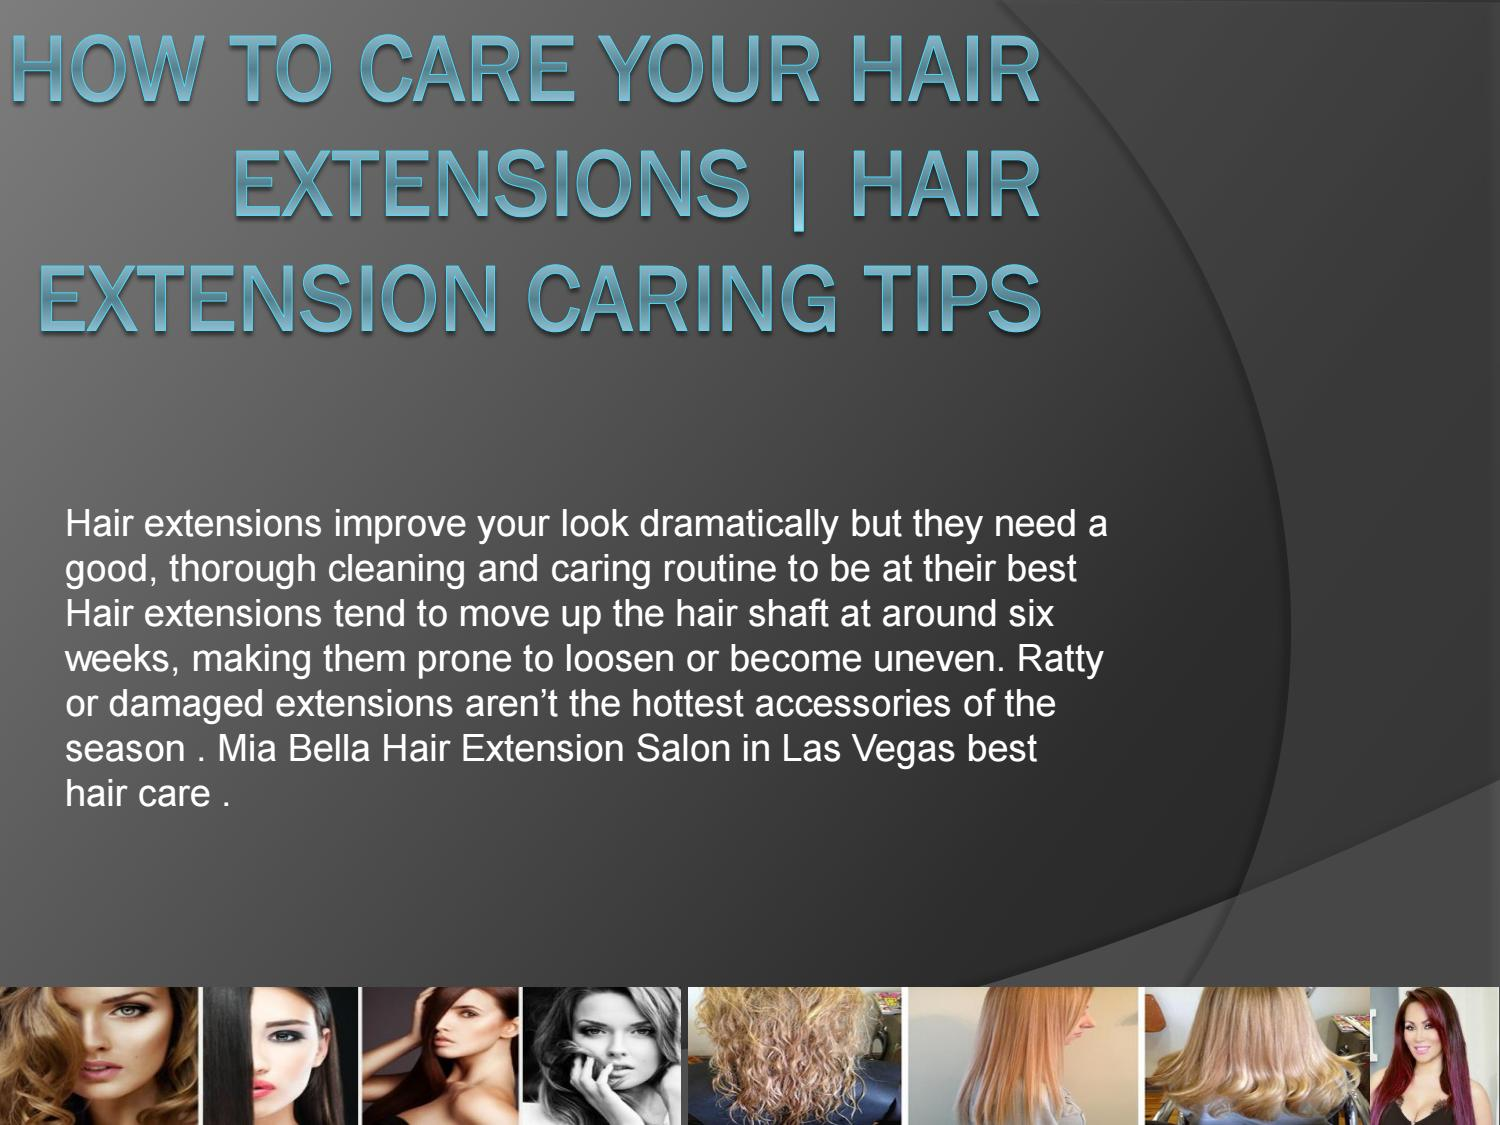 How To Care Hair Extension By Mia Bella Salon In Las Vegas By Mia